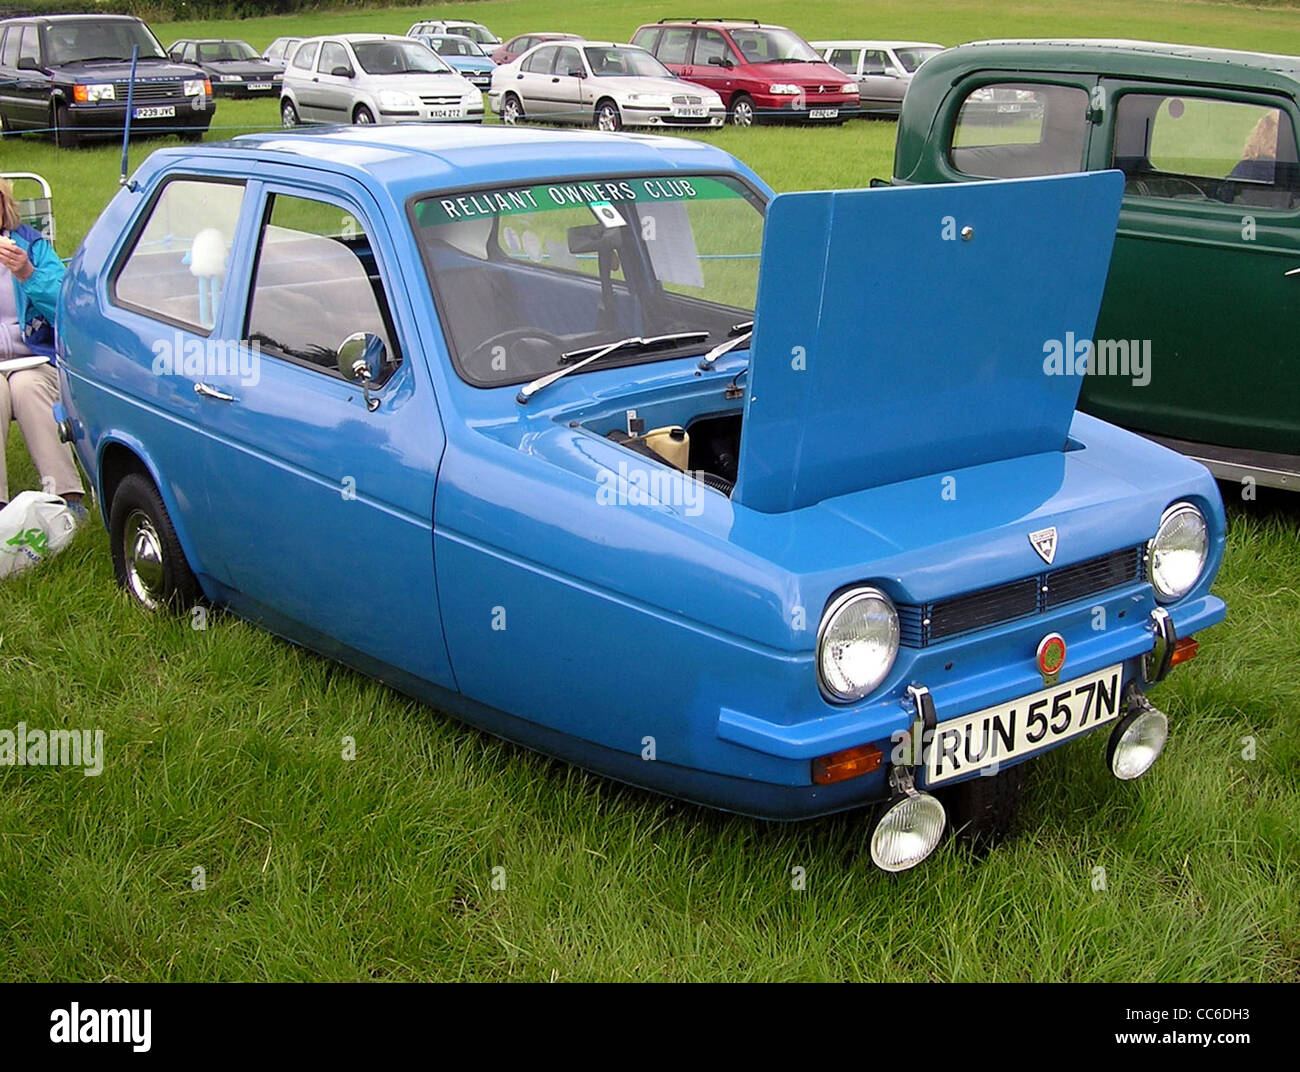 1974 Reliant Robin at Bristol Car Show, The Downs, Bristol, England. - Stock Image